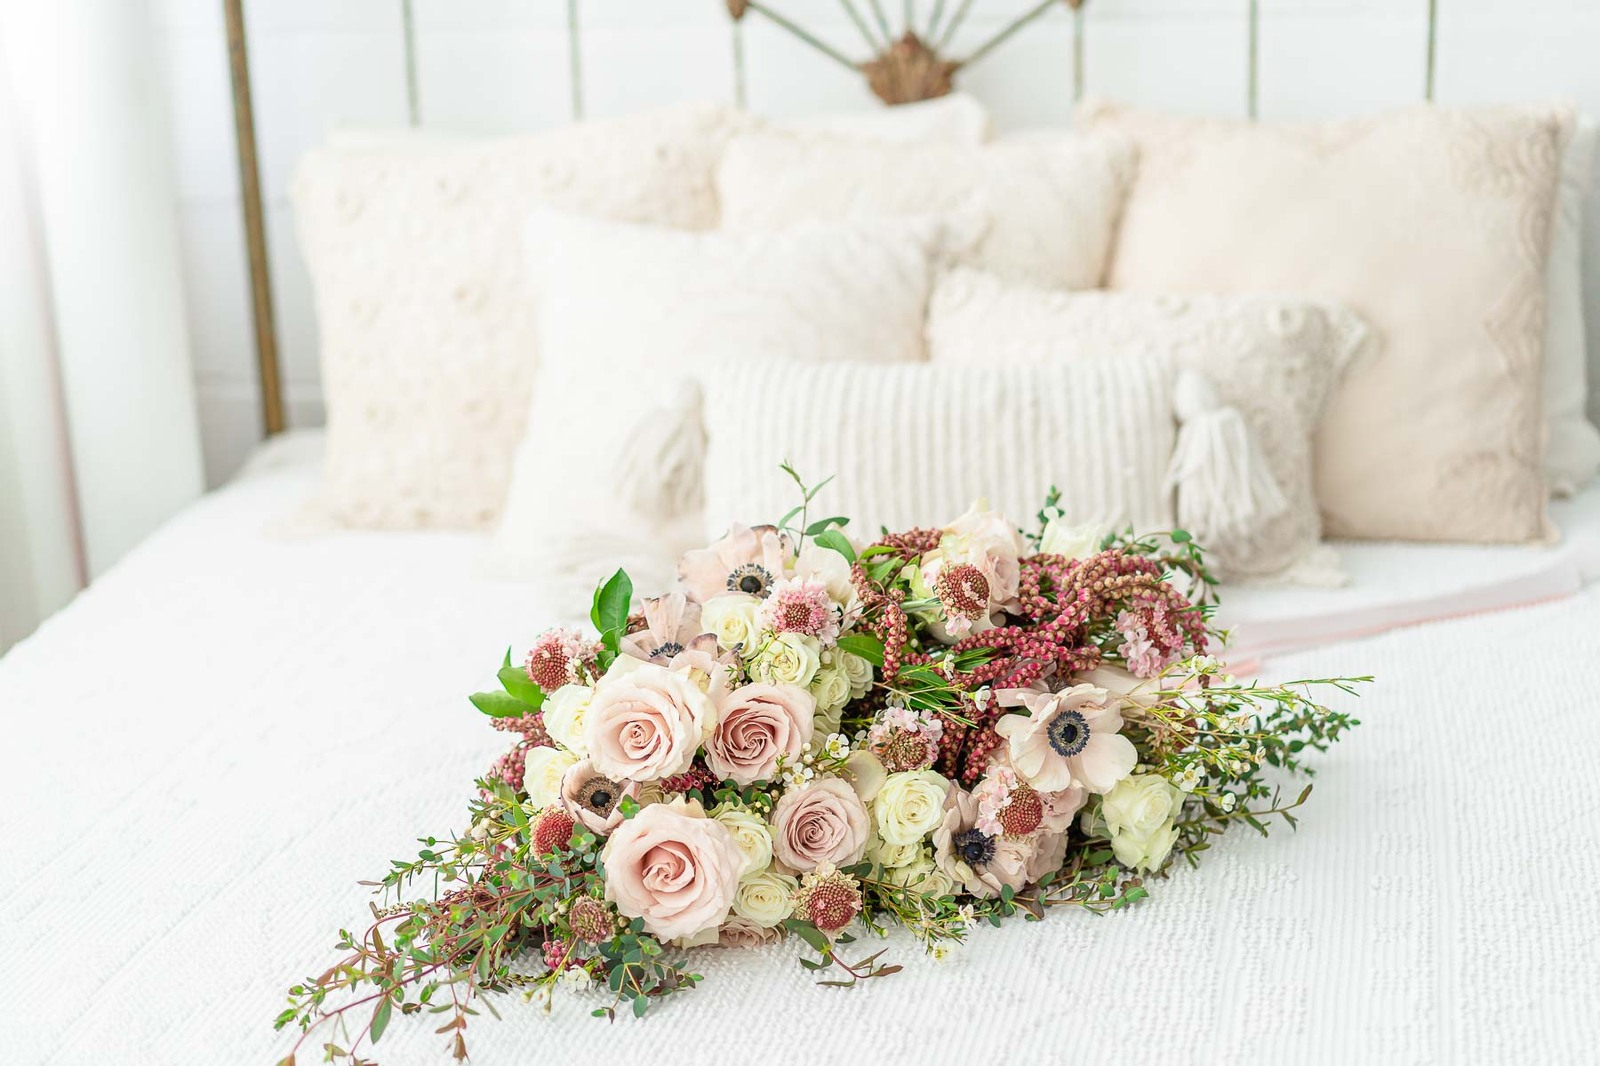 Bouquet with pink roses on bed with off-white pillows